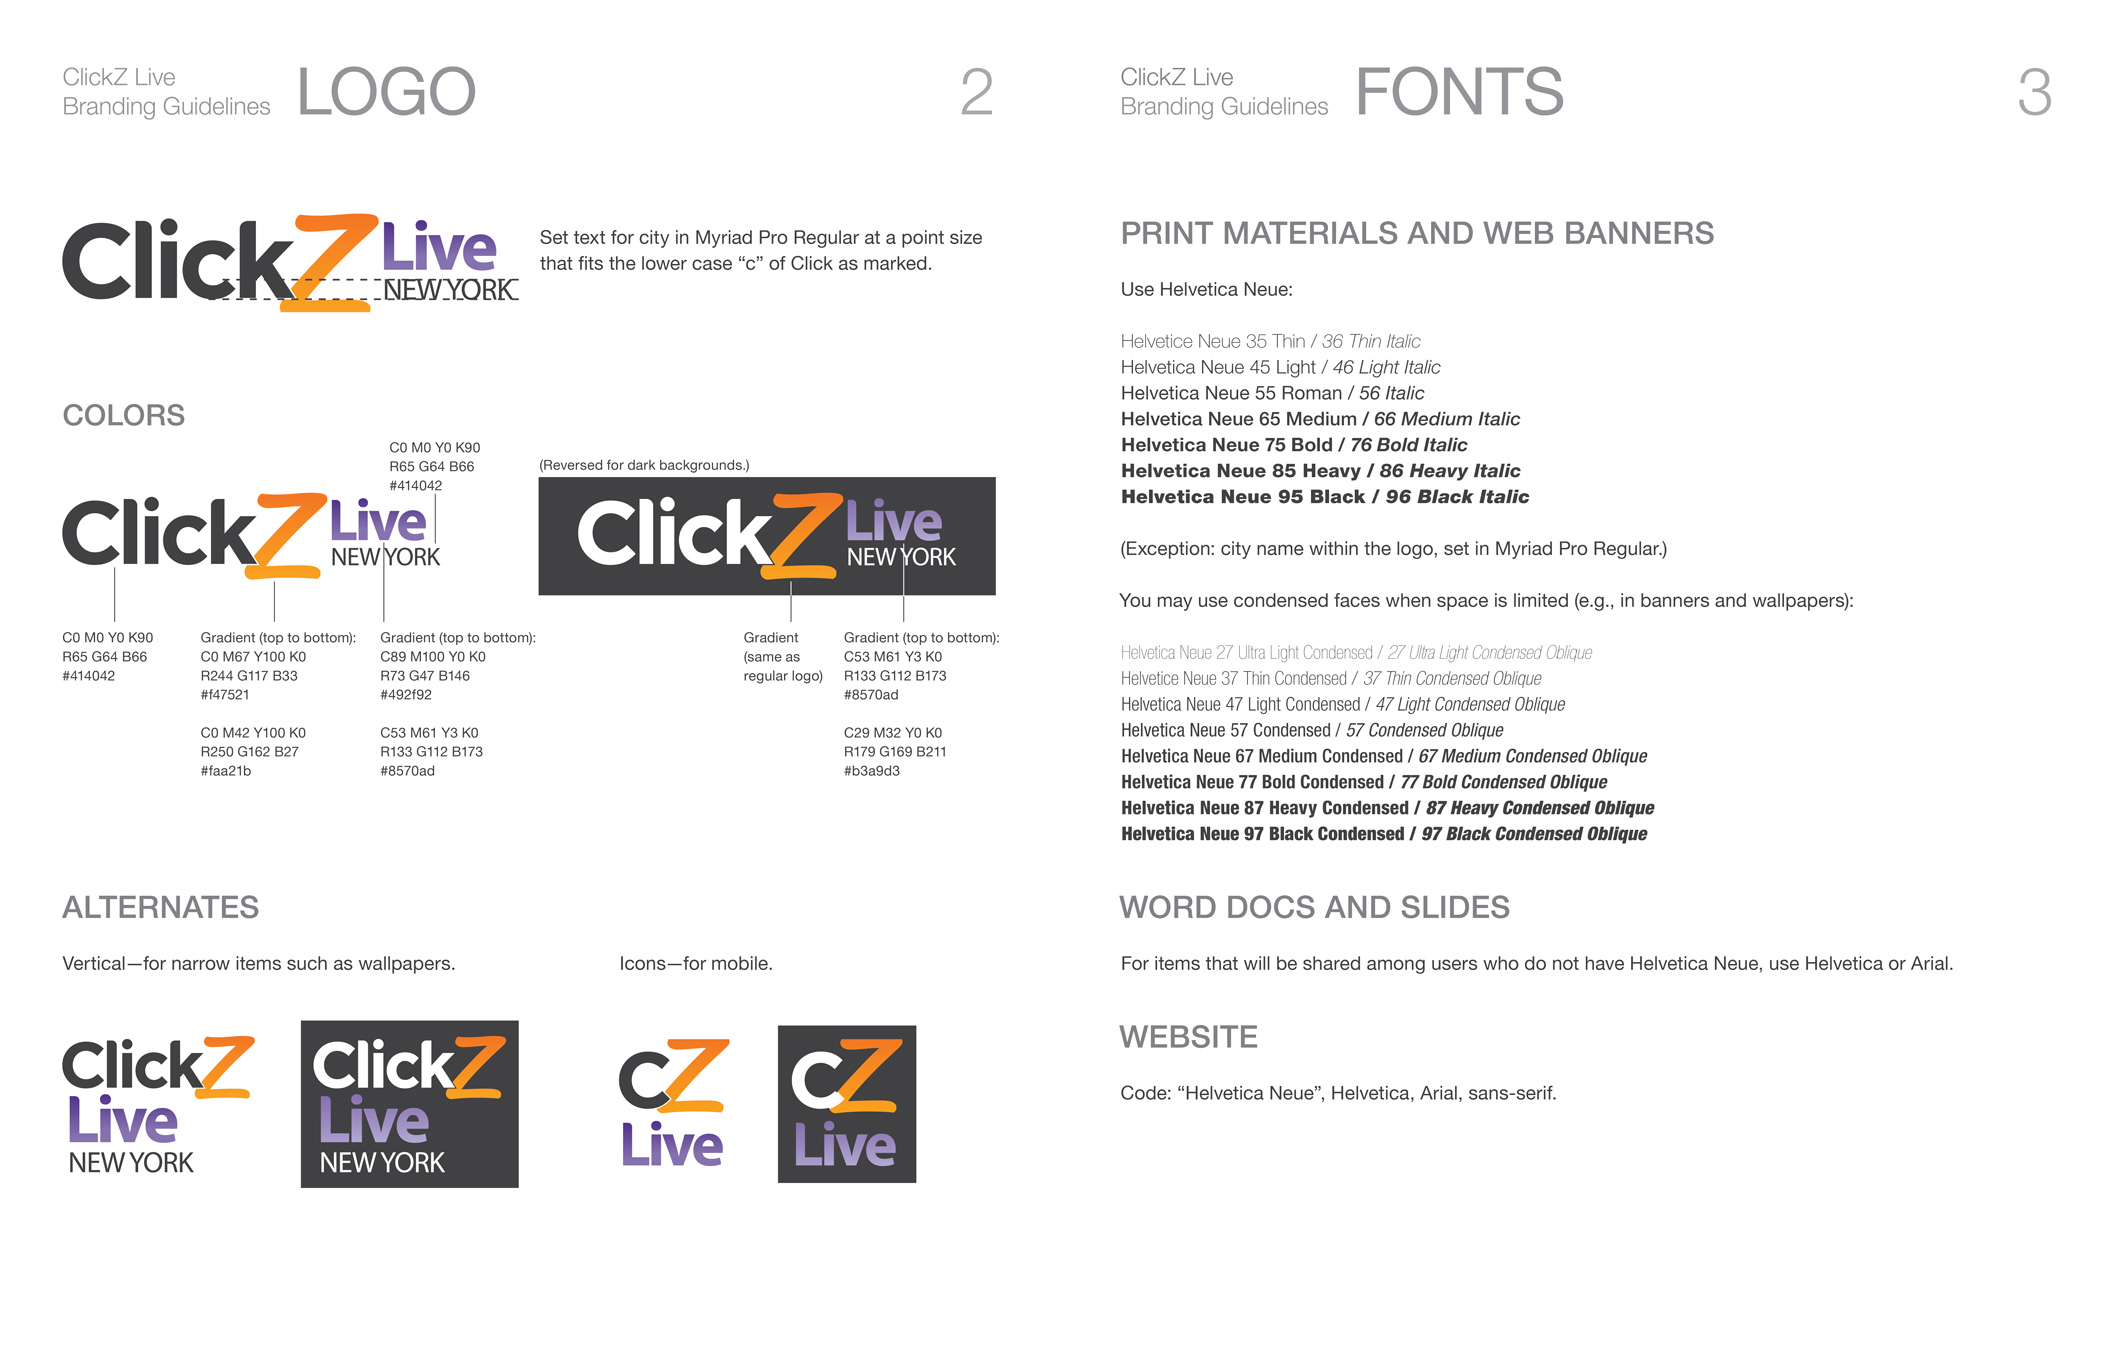 Logo and fonts for ClickZ branding.